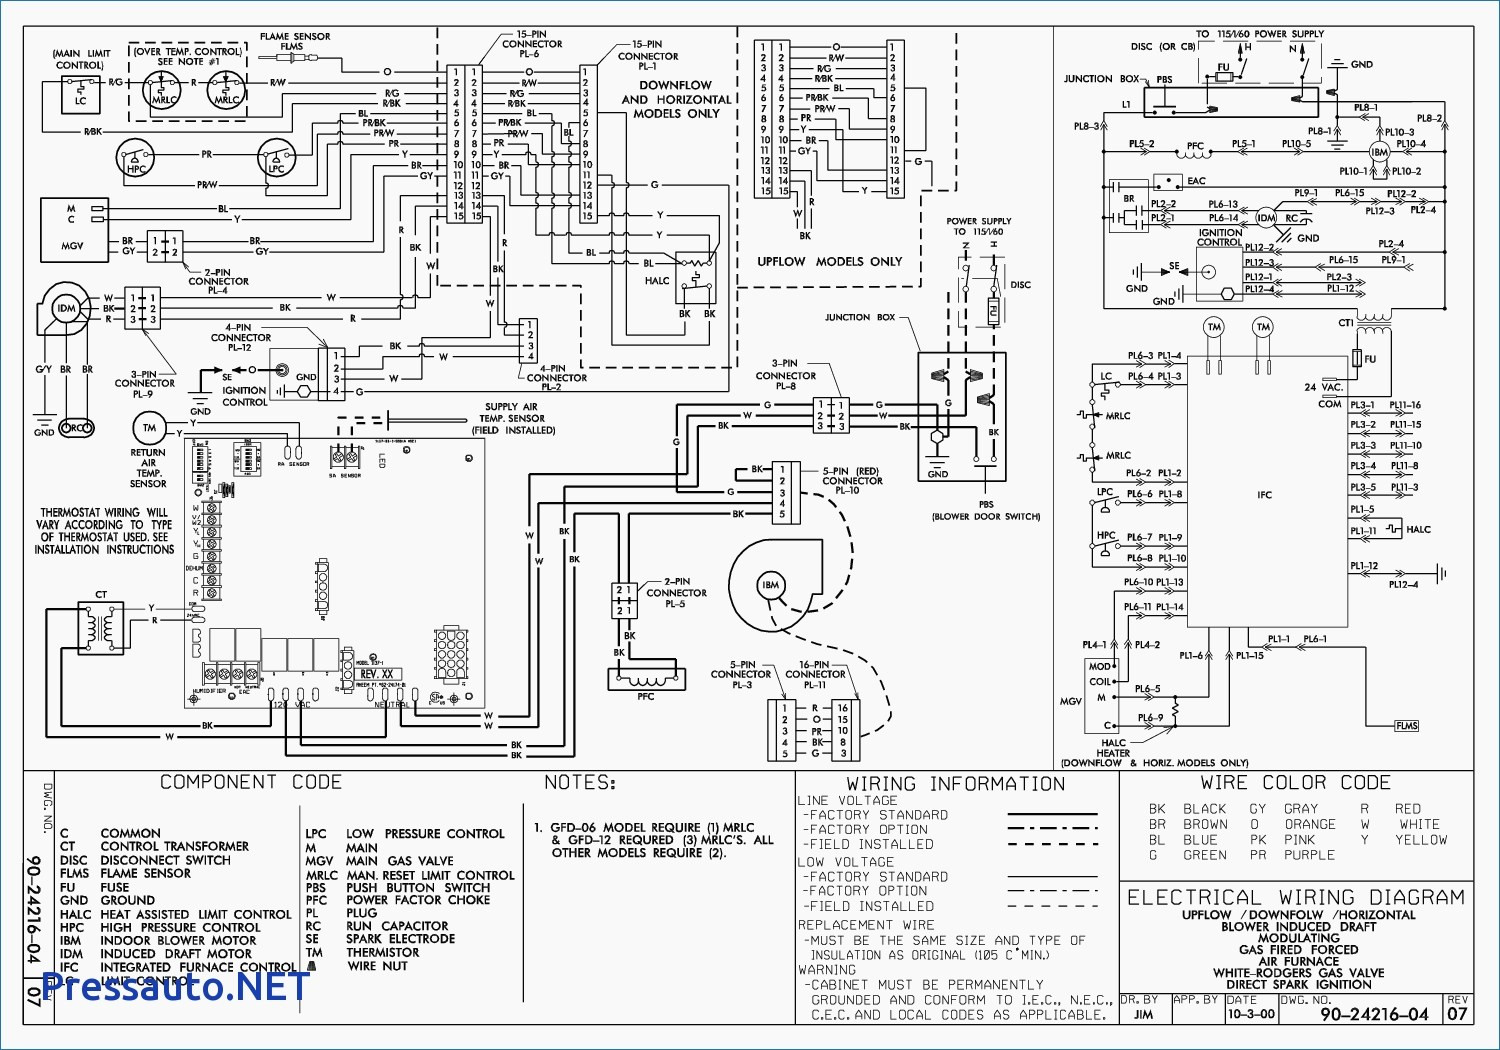 York Stellar Air Conditioner Wiring Diagram